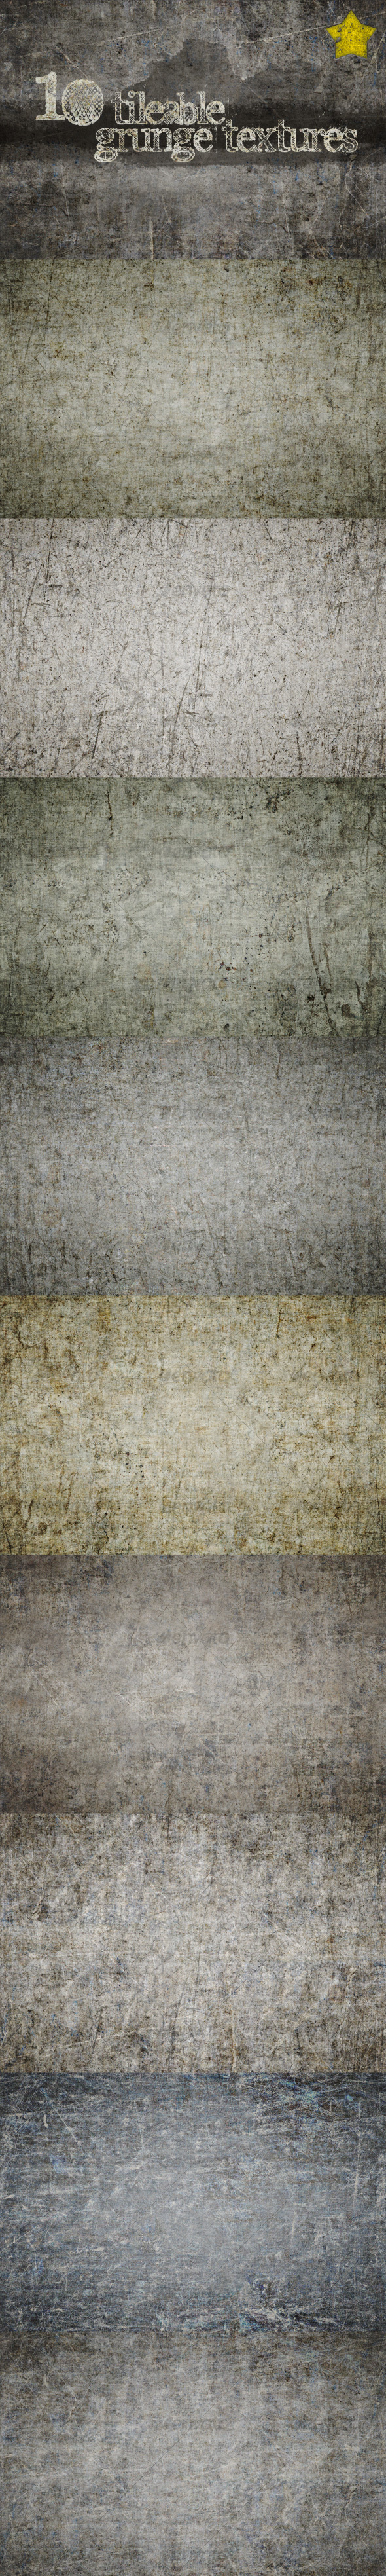 GraphicRiver 10 Tileable Grunge Textures 107664